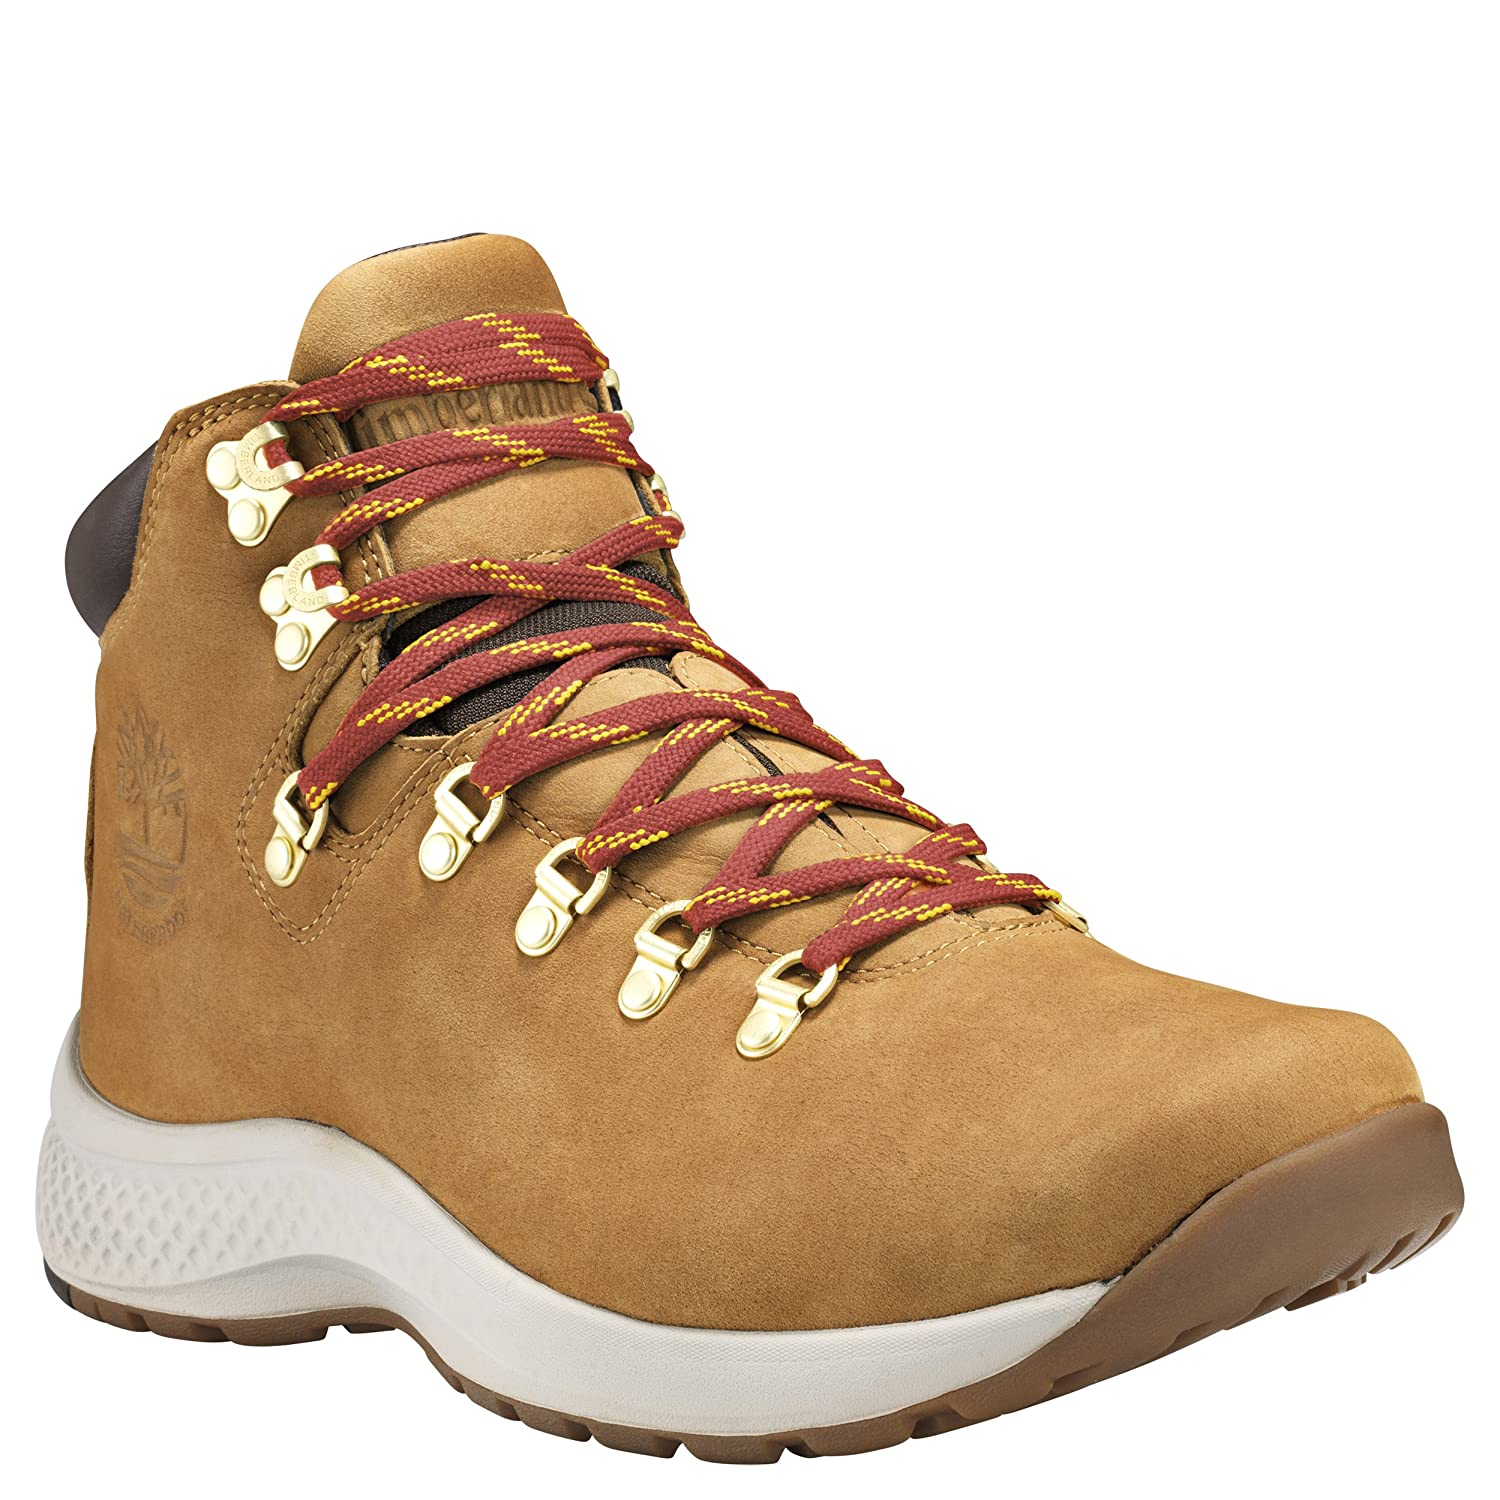 3c499481bc0 Timberland Mens 1978 Aerocore Hiker WP Boots: Amazon.ca: Shoes ...